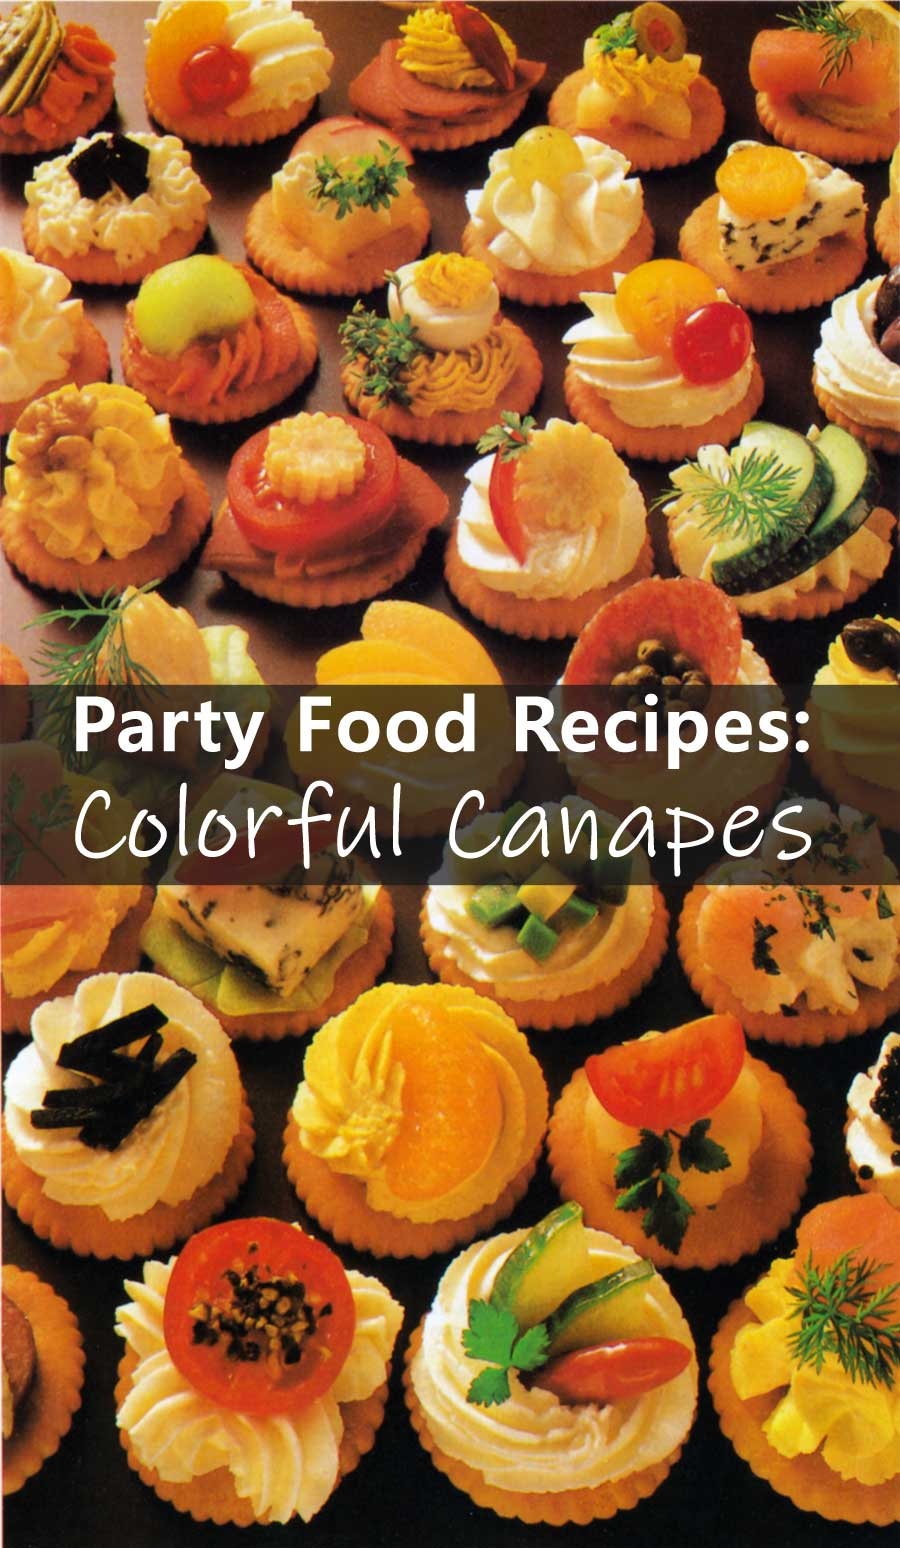 Party Food Recipes-Colorful Canapes-healthy snacks-calories-easy party food recipe ideas